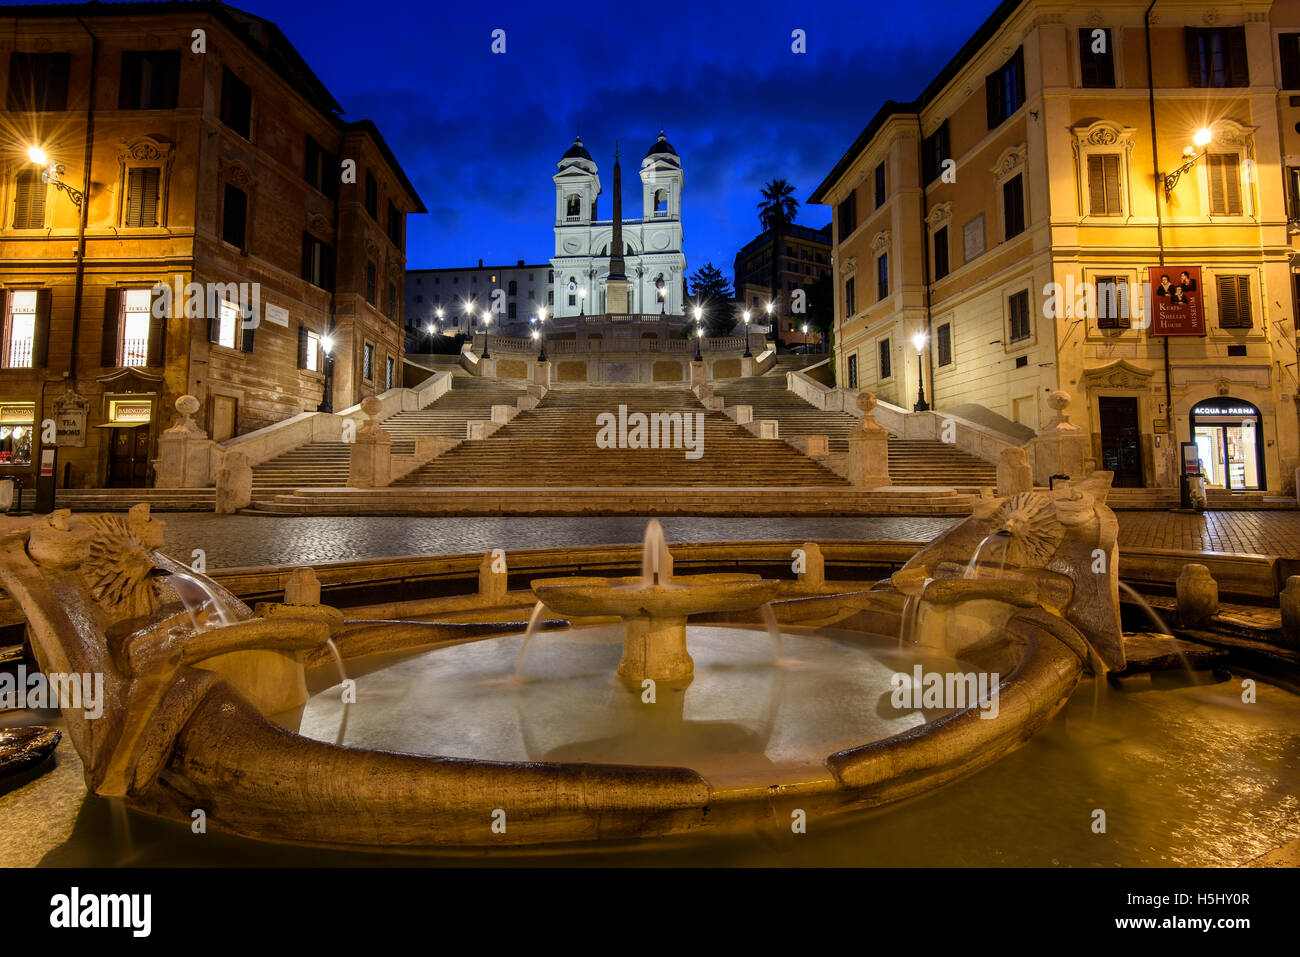 Night view of Fontana della Barcaccia and Spanish Steps, Piazza di Spagna, Rome, Lazio, Italy - Stock Image